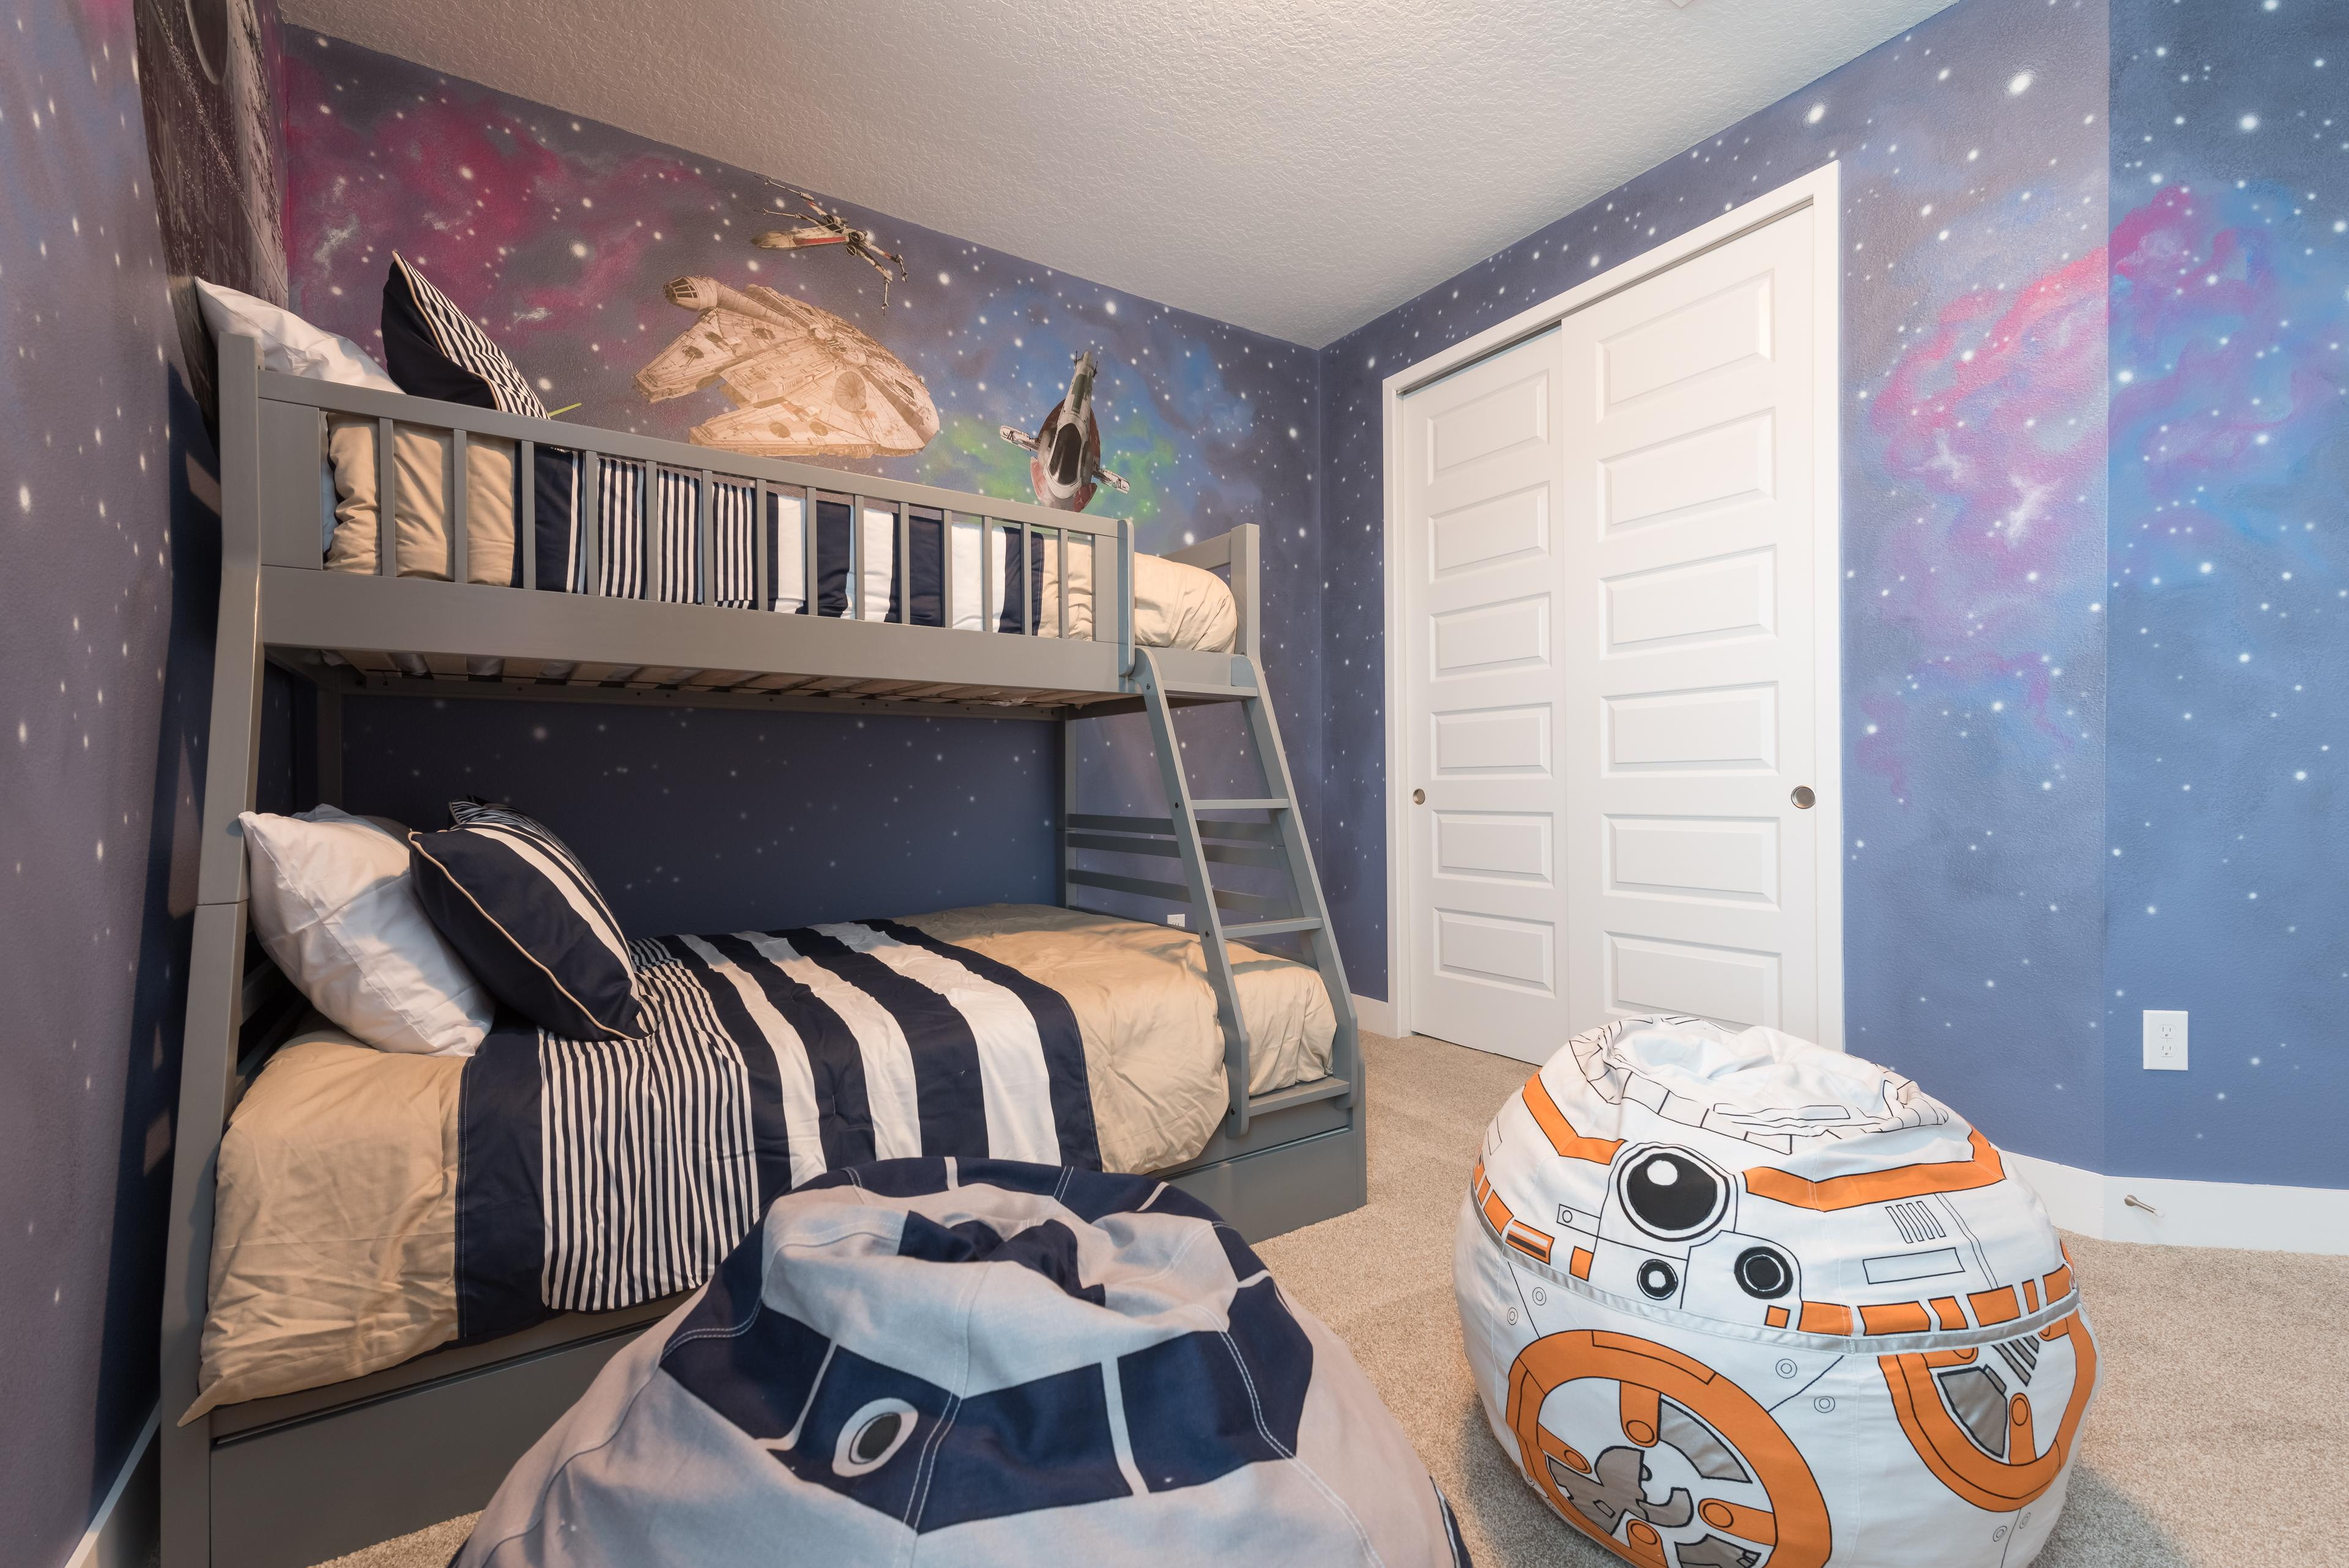 Property Image 2 - Stylish Home with Galactic Bedroom at Encore